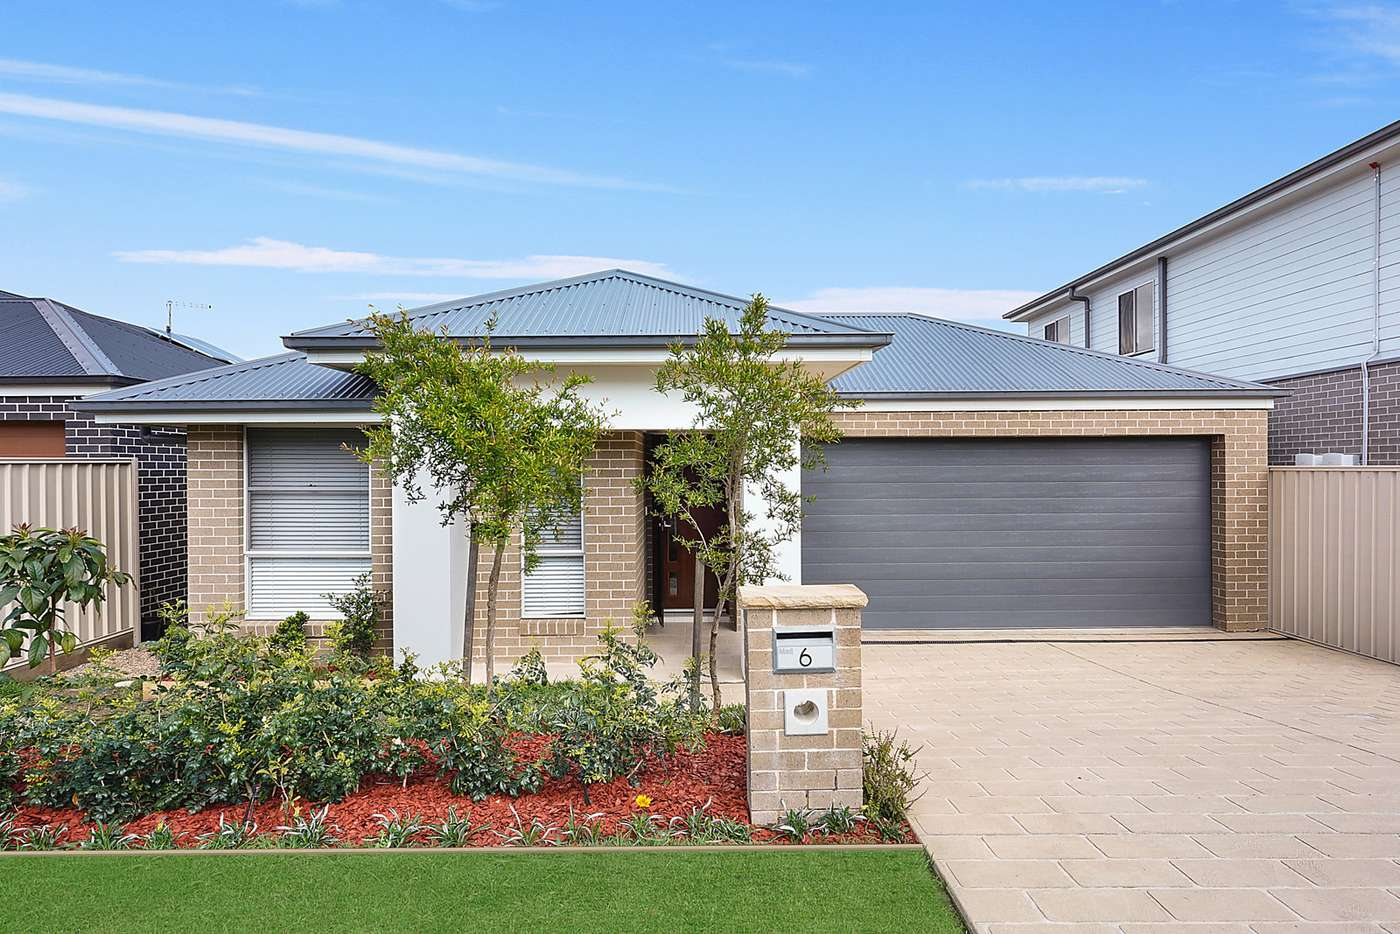 Main view of Homely house listing, 6 Michael Street, Schofields NSW 2762